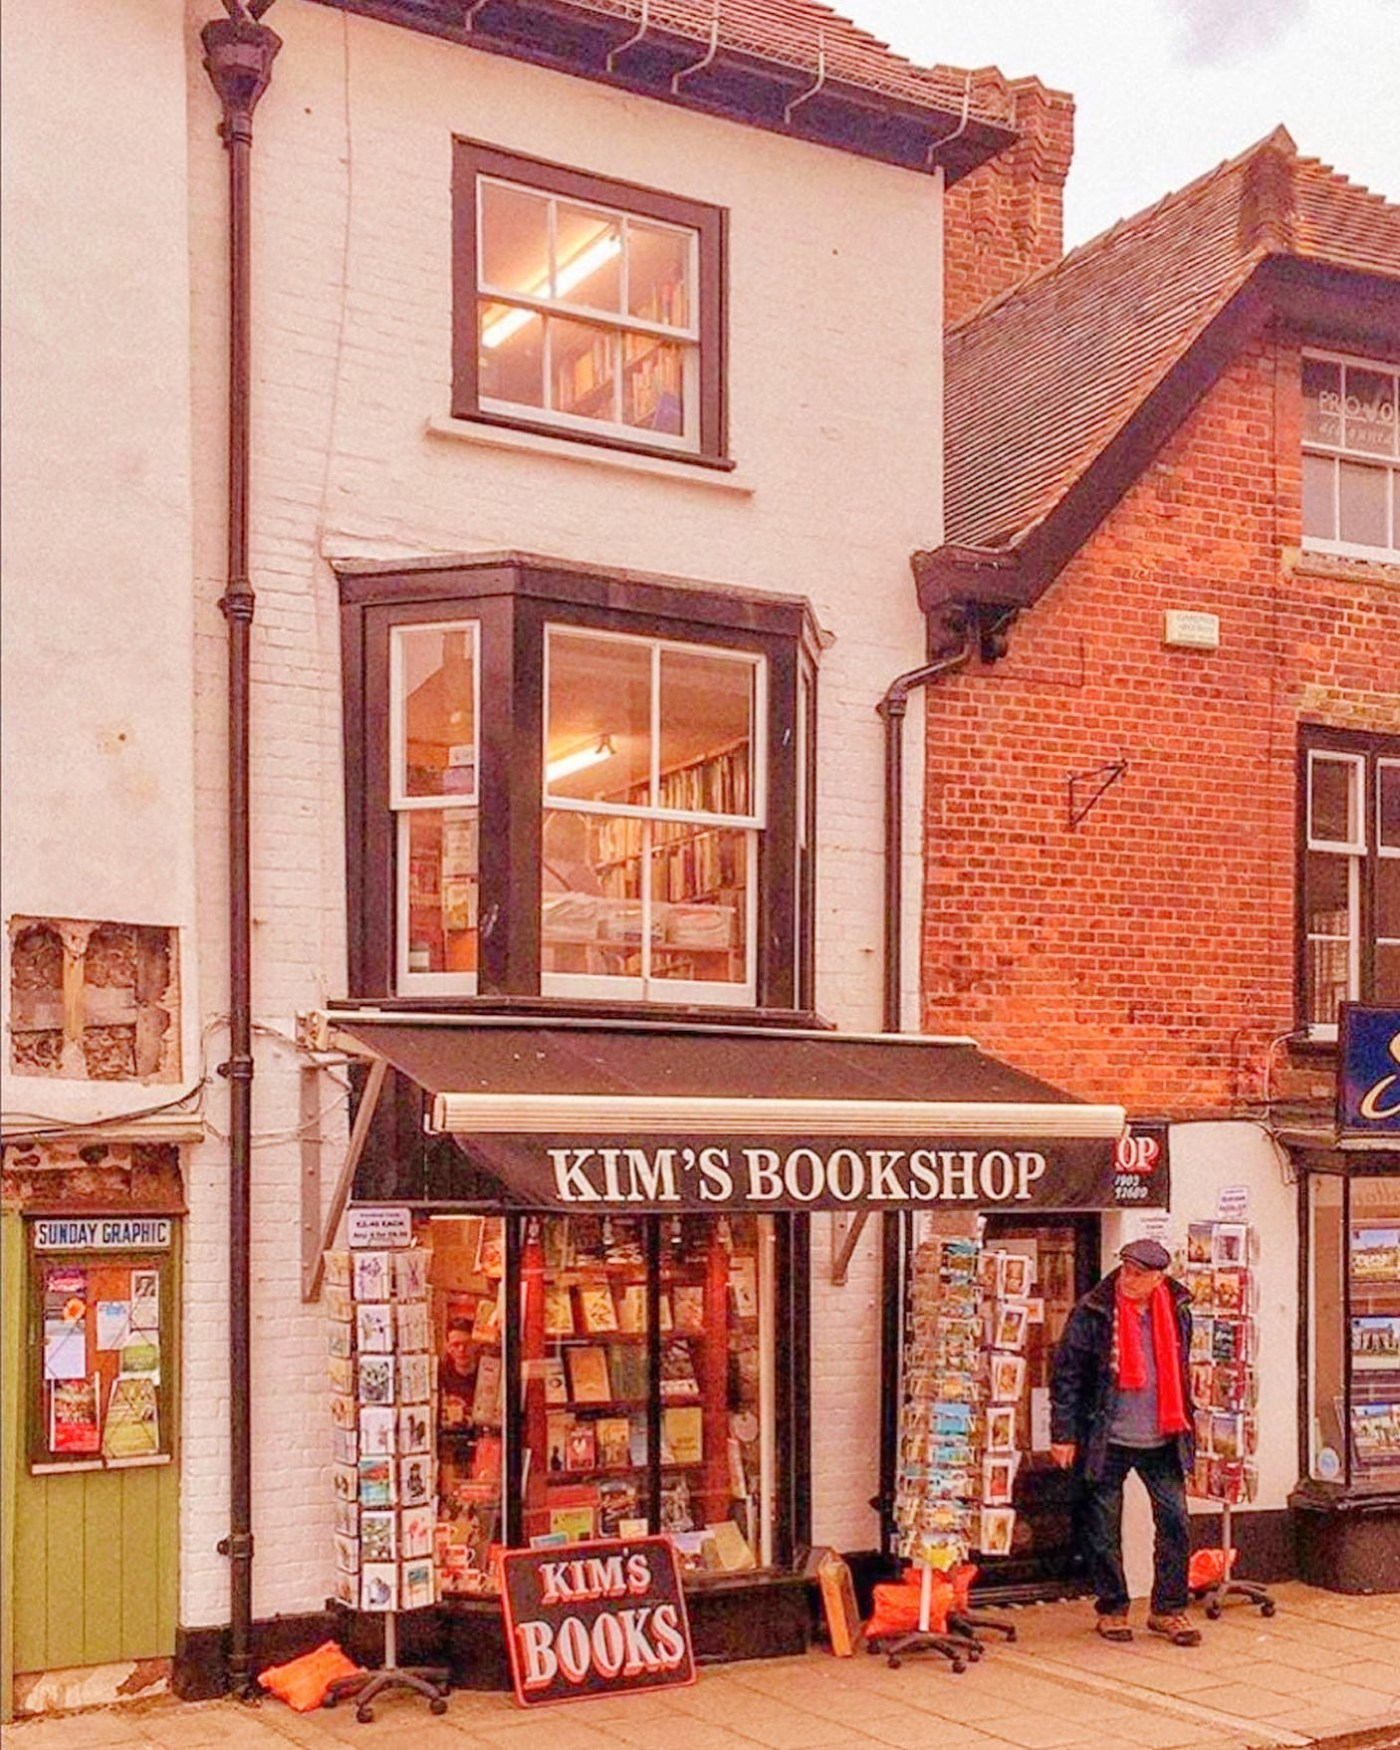 Kim's Bookshop in England